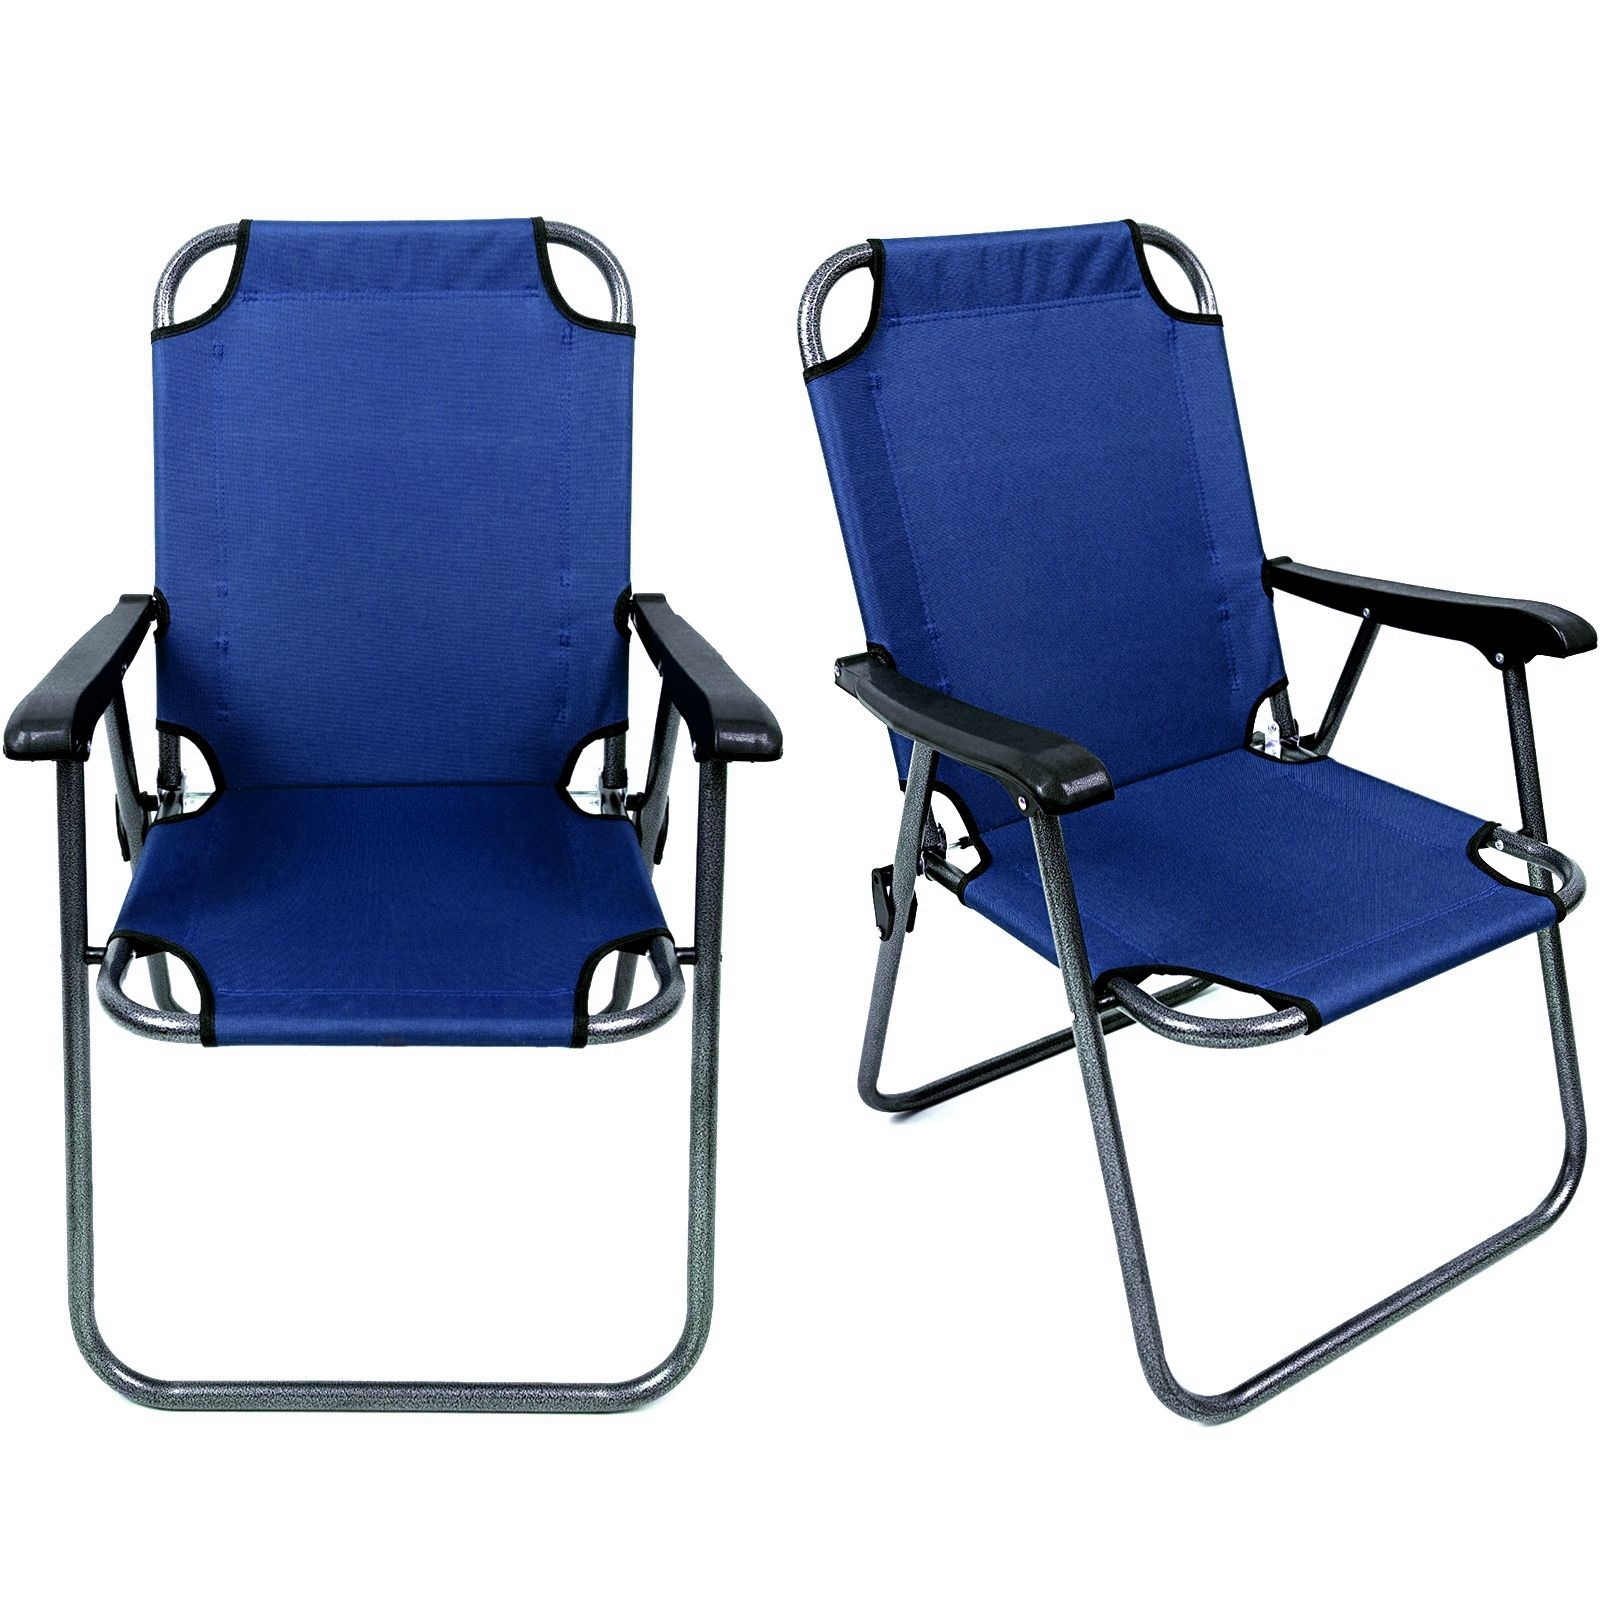 Magshion Deluxe Lightweight Beach Chair Outdoor Camping Hiking With Armrest Chair Set of 2Blue